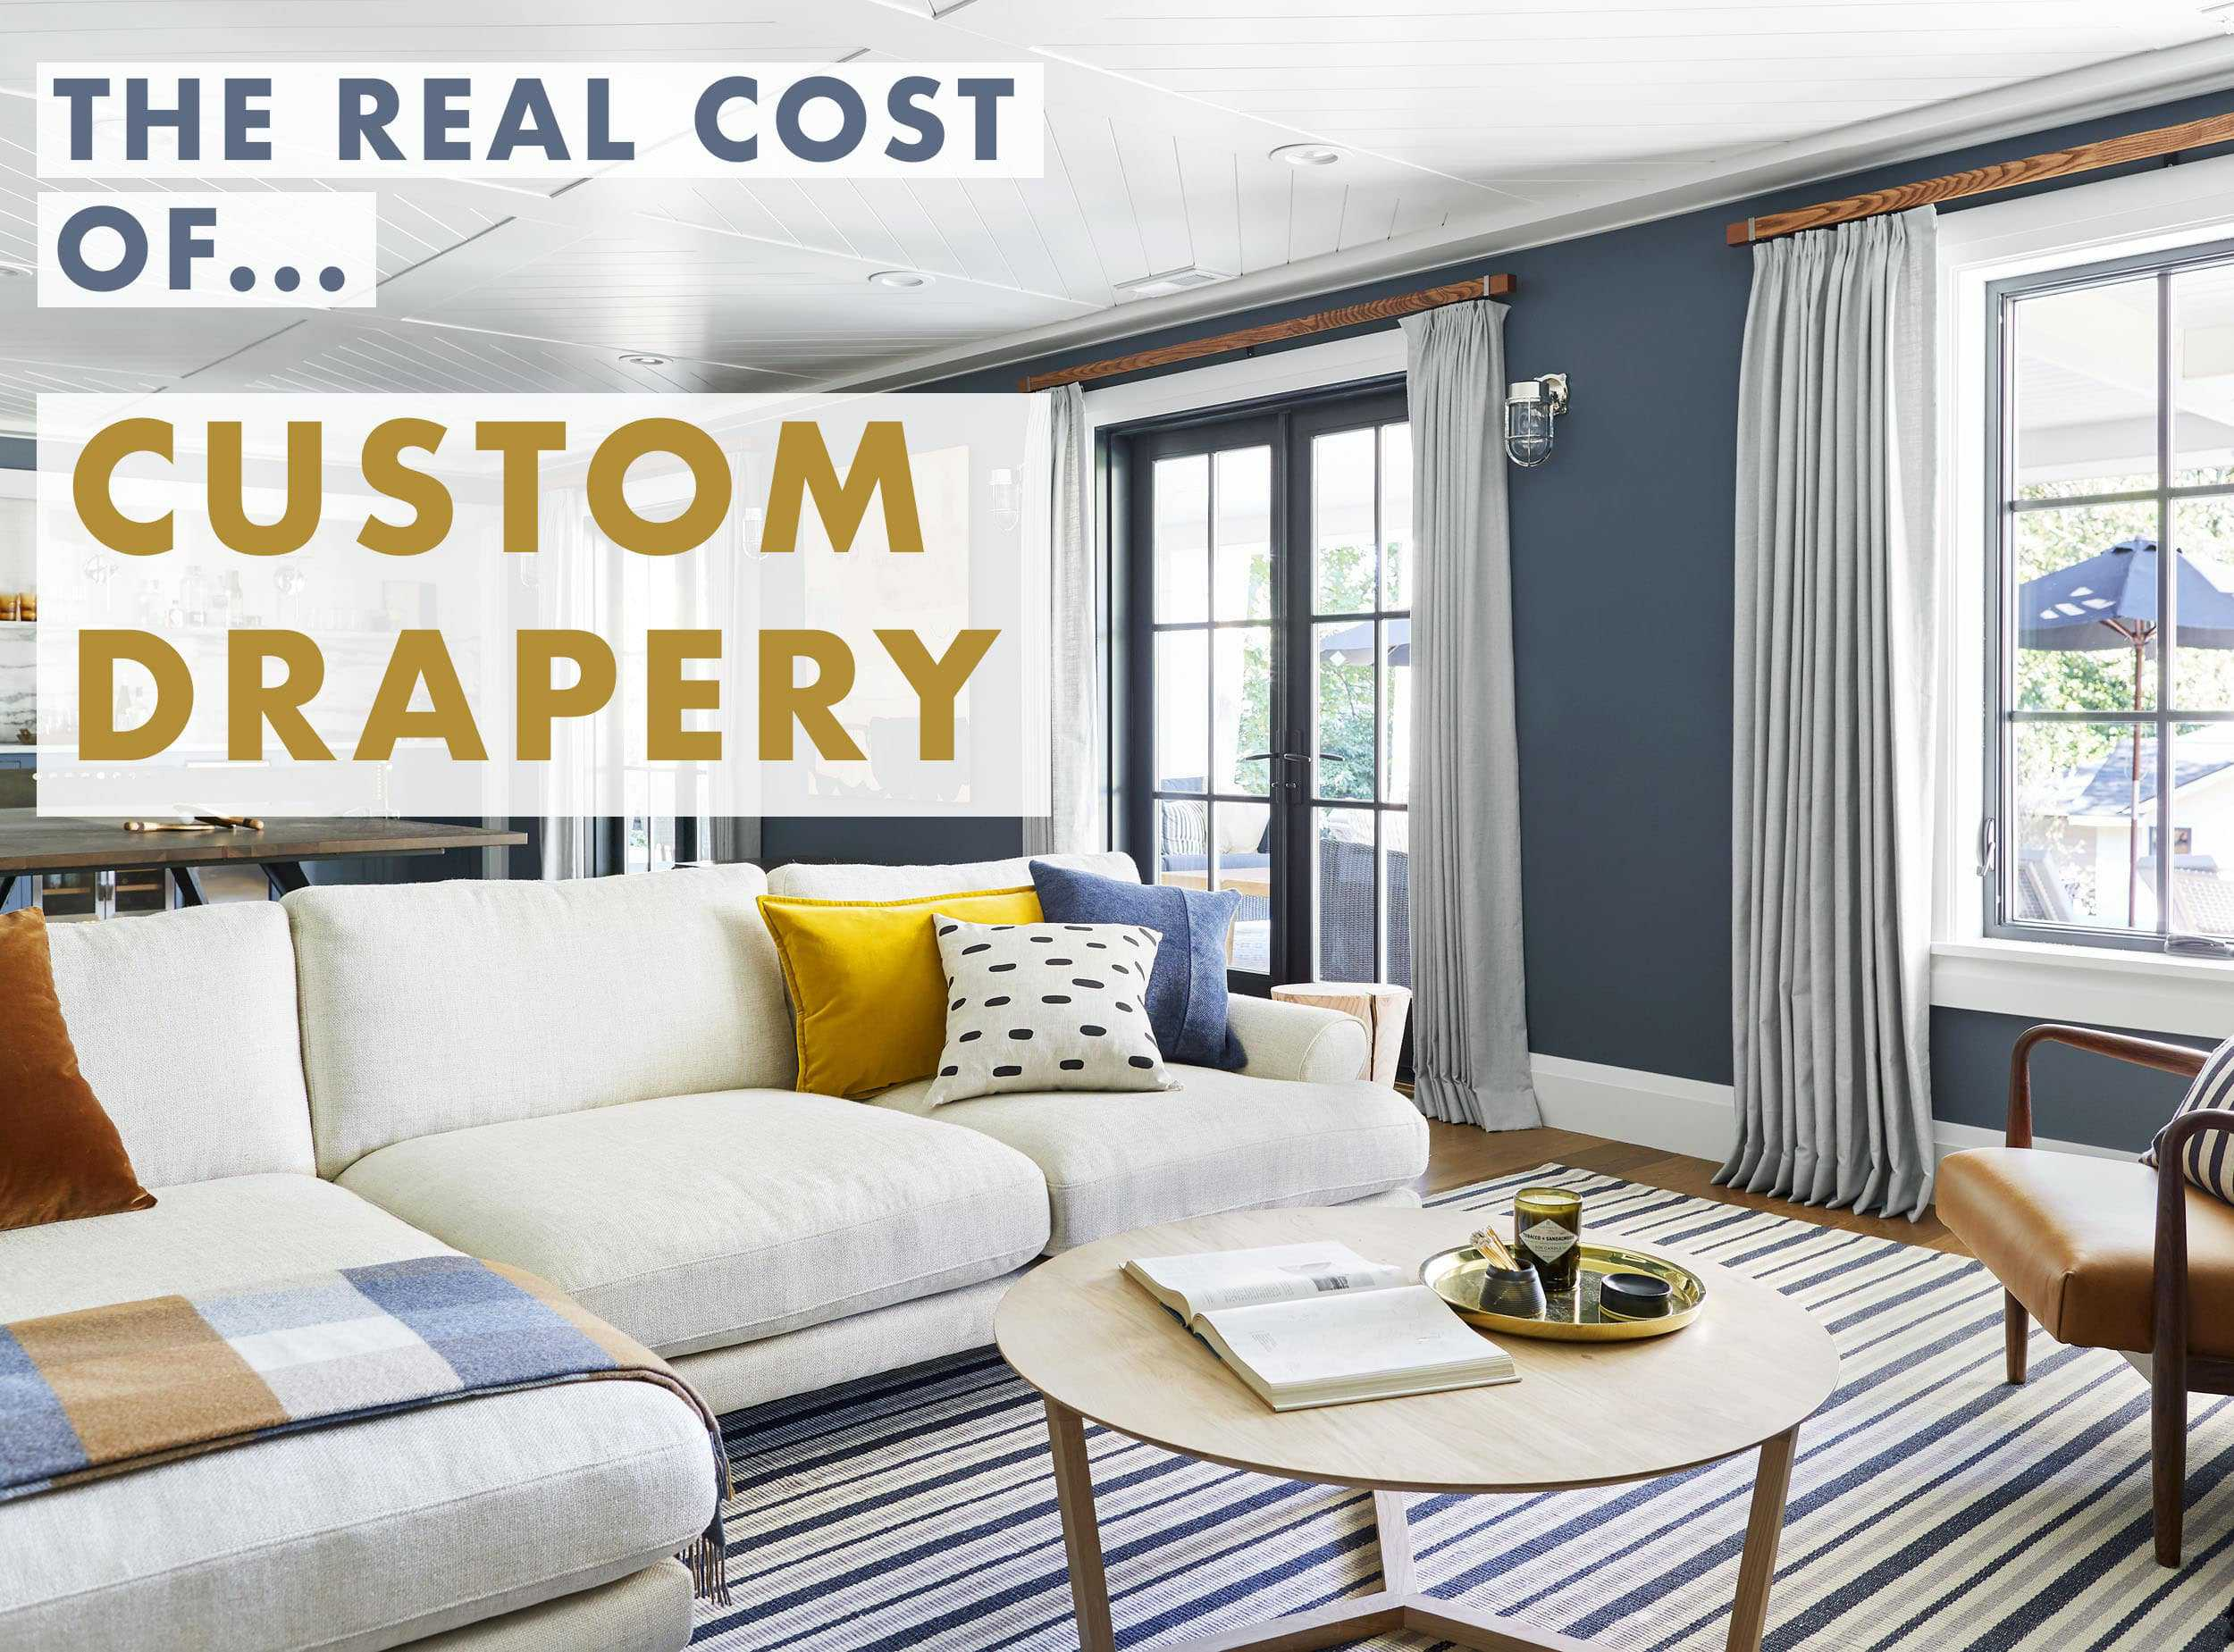 Design Myth Busters The Real Cost Of Custom Drapery Emily Henderson